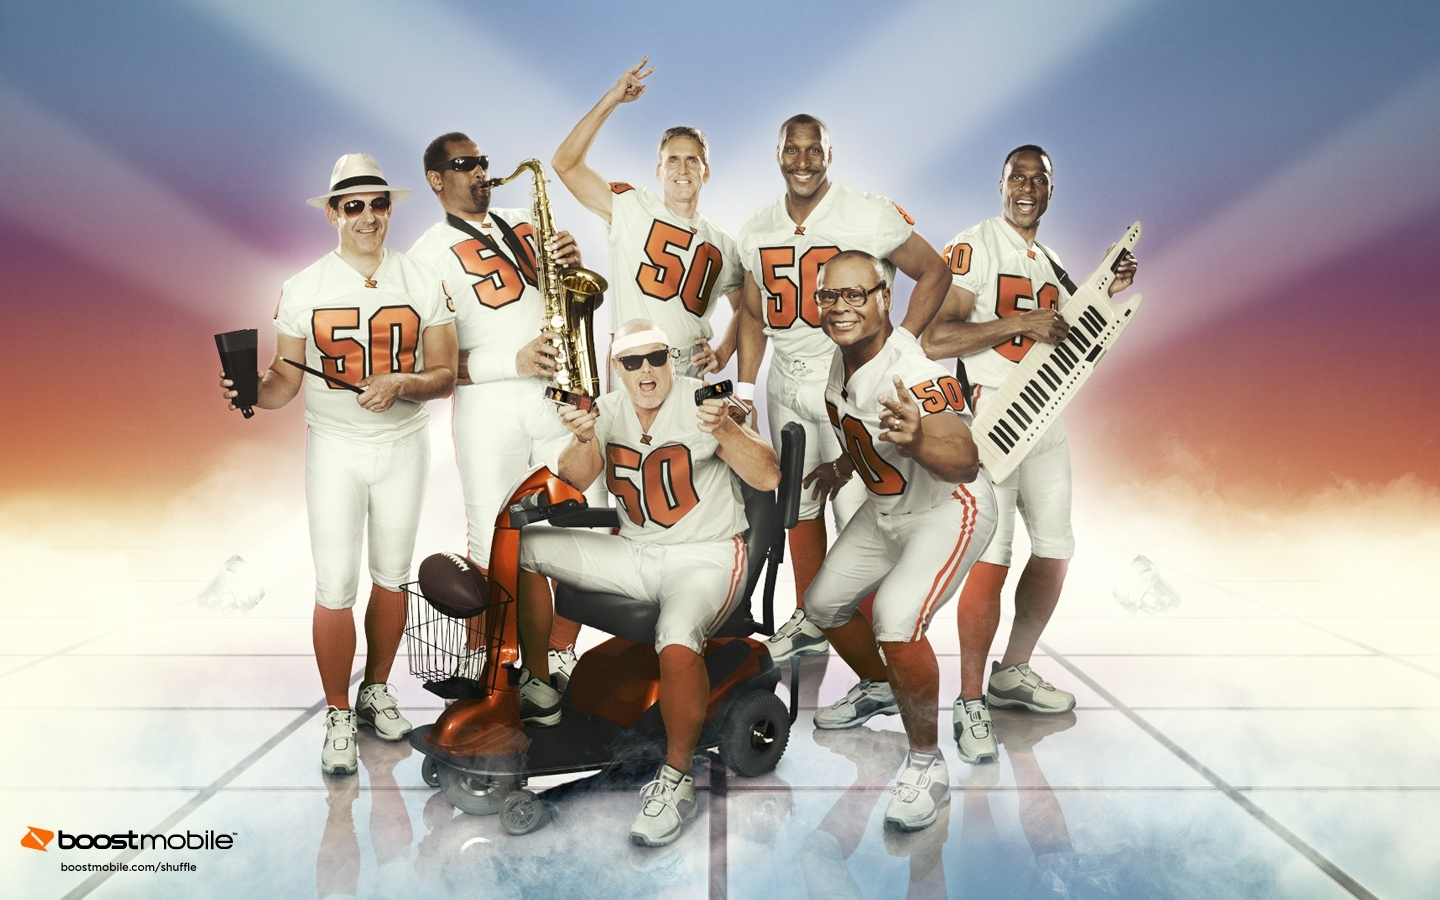 Boost Mobile Super Bowl Shuffle - The Inspiration Room for Super Bowl Shuffle Miami